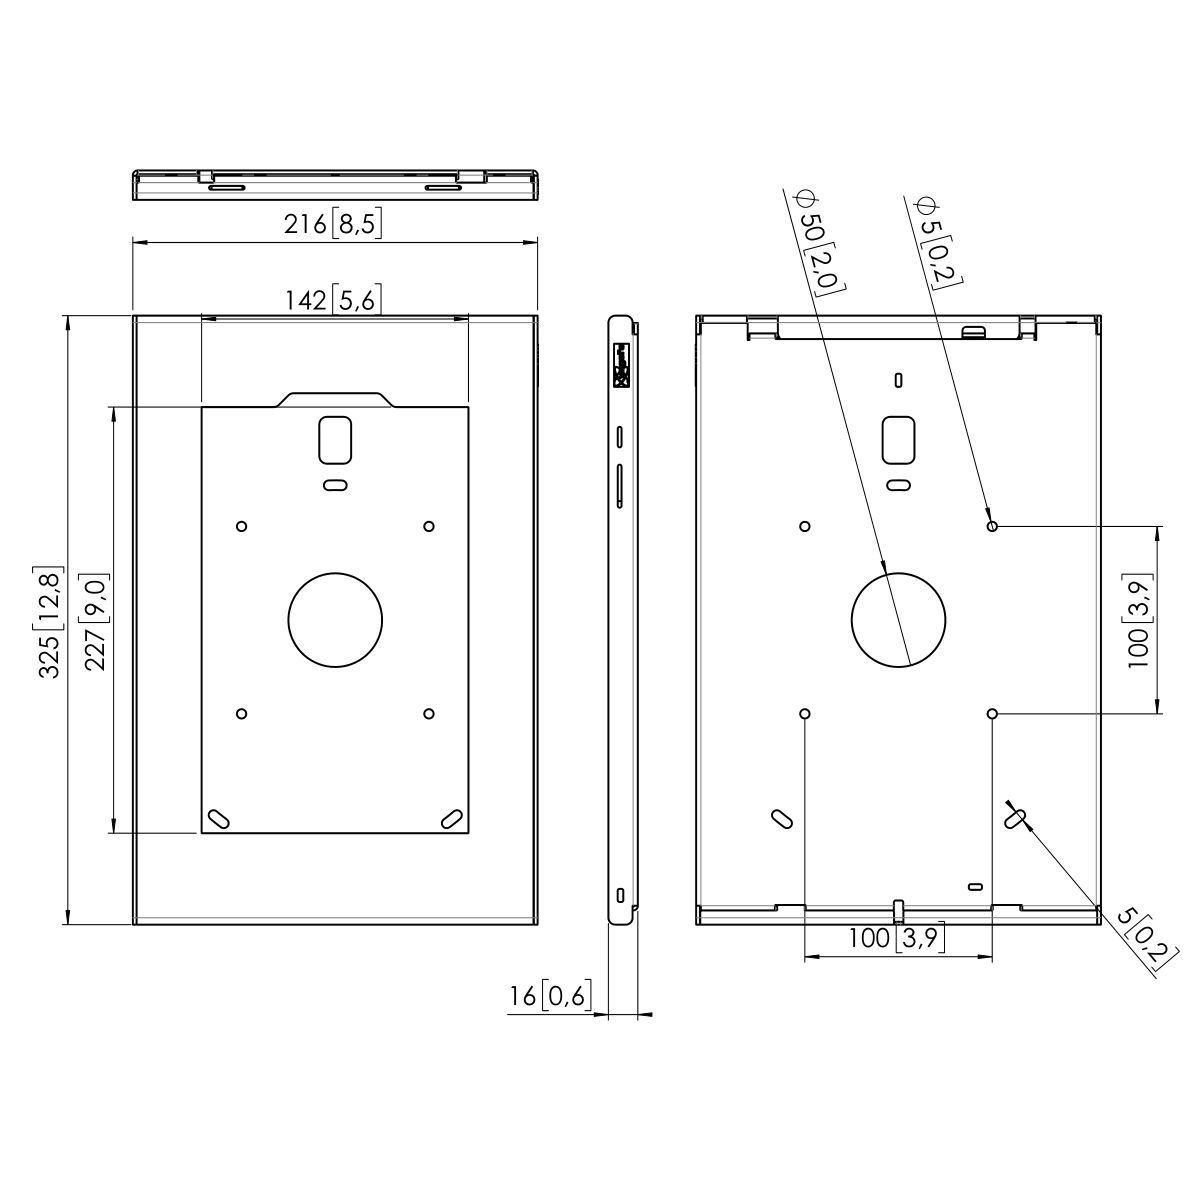 Vogel's PTS 1232 TabLock for Samsung Galaxy Tab S4 (2018) - Dimensions